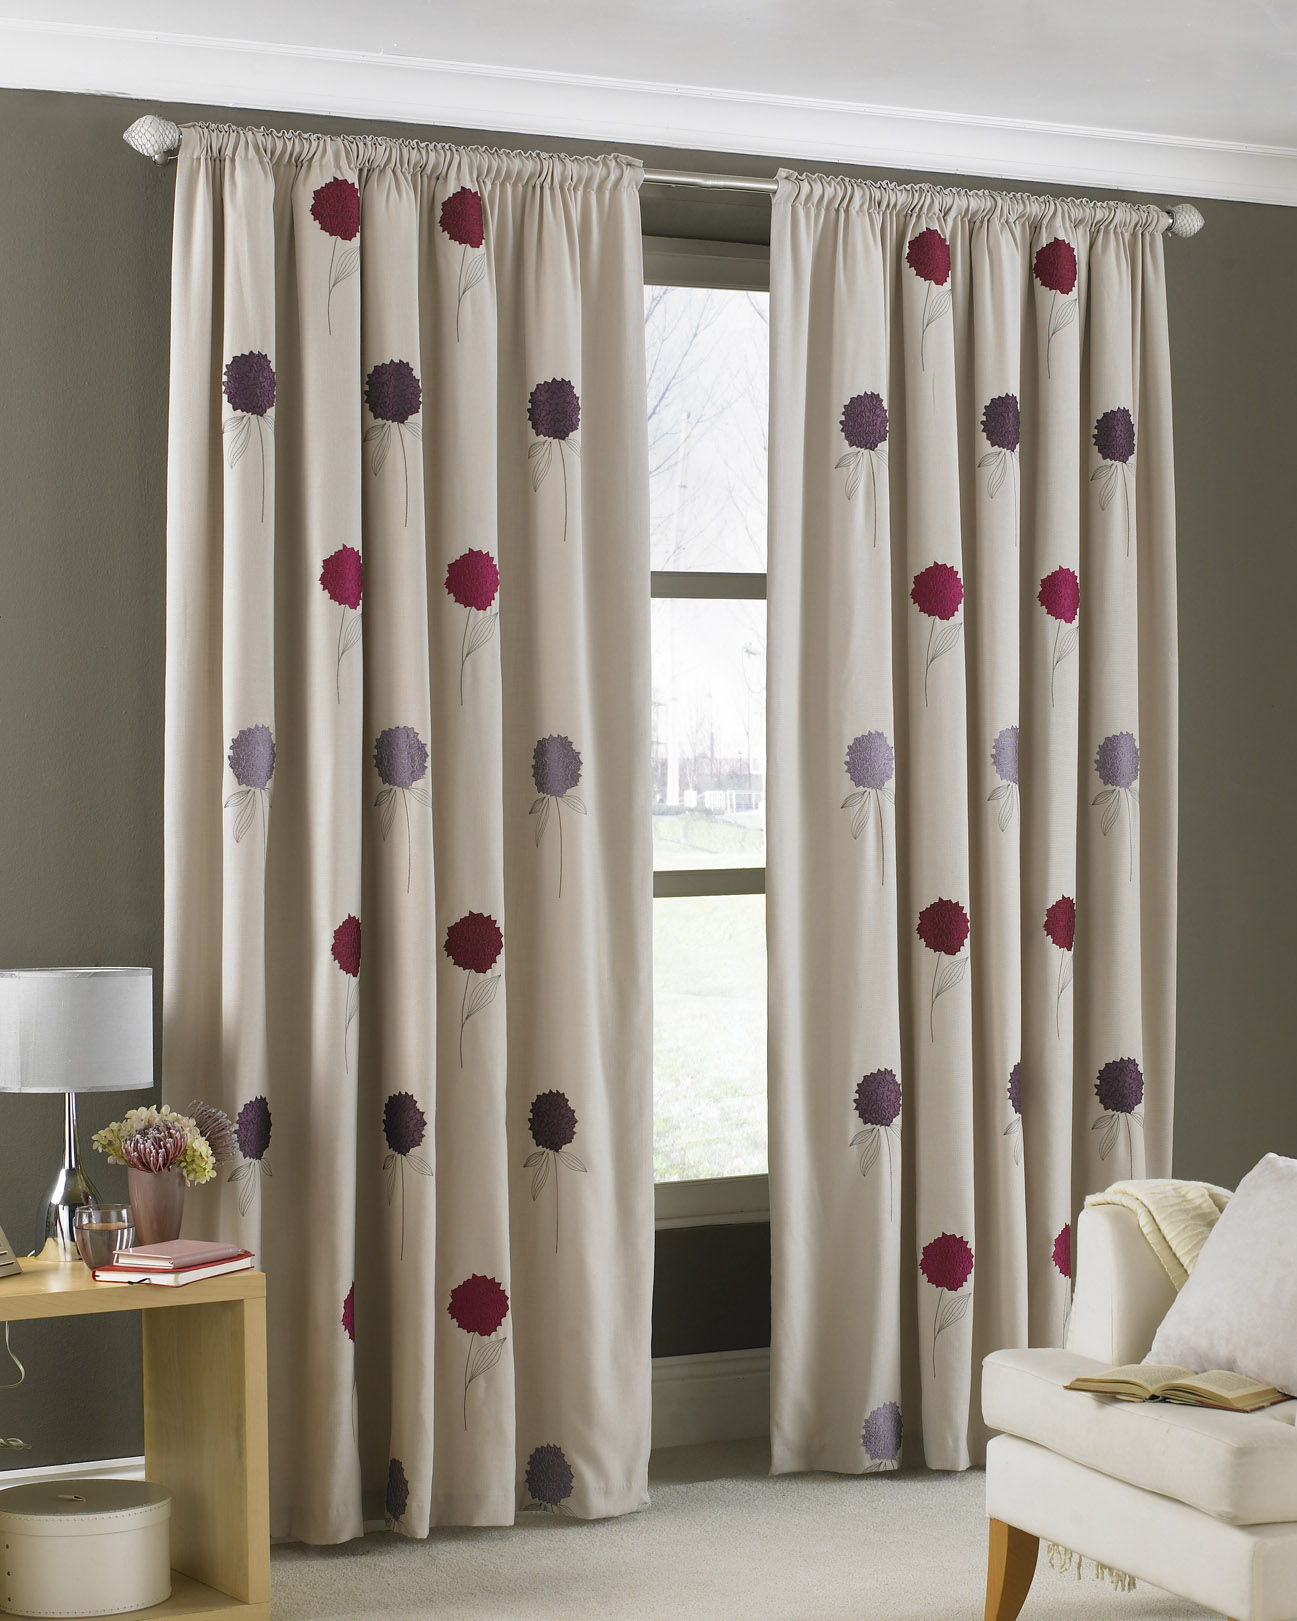 sahina textiles ltd ready made curtains. Black Bedroom Furniture Sets. Home Design Ideas